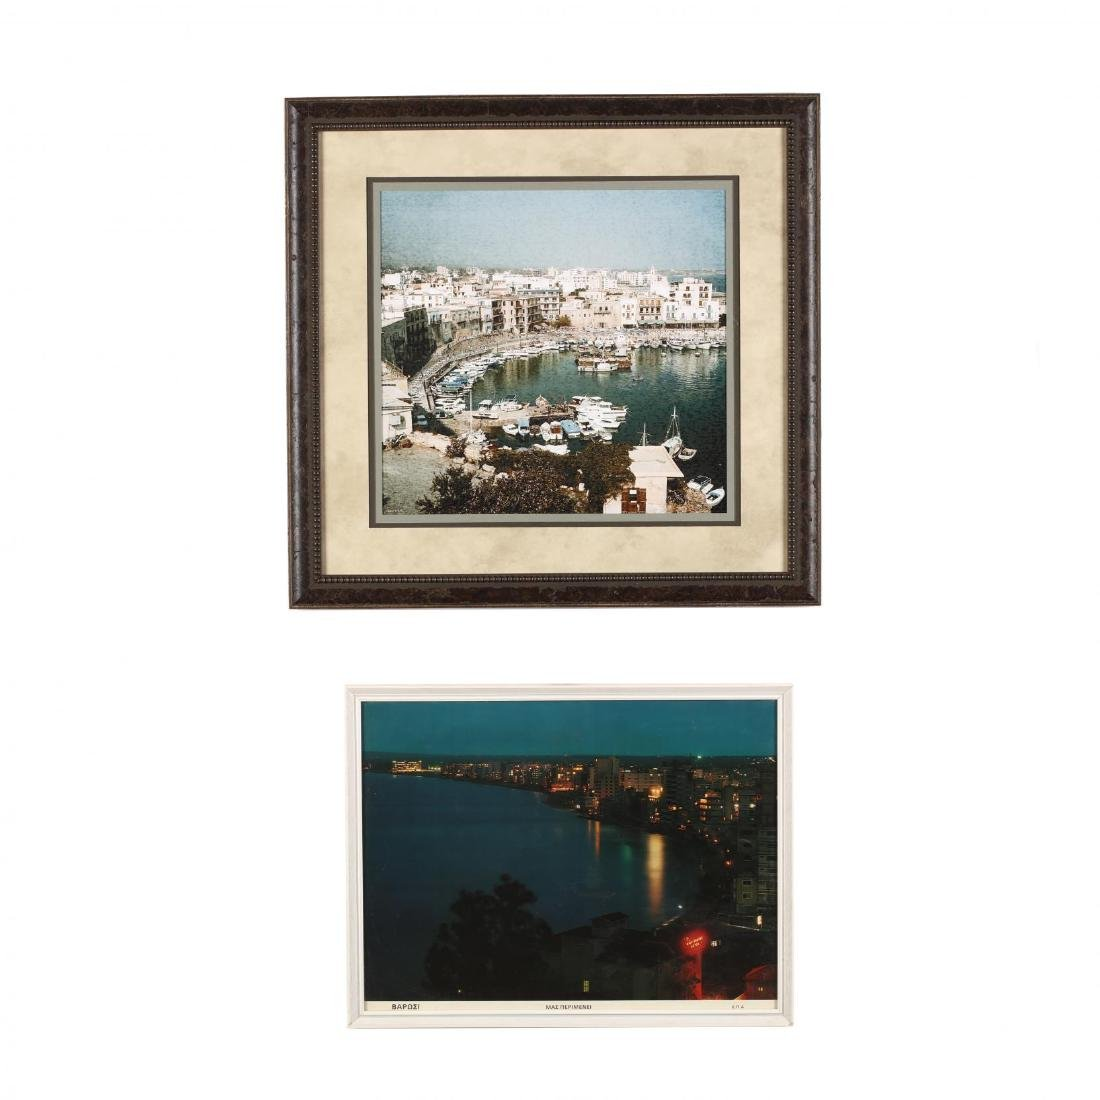 Two Framed Vintage Photographs of Cypriot Harbors